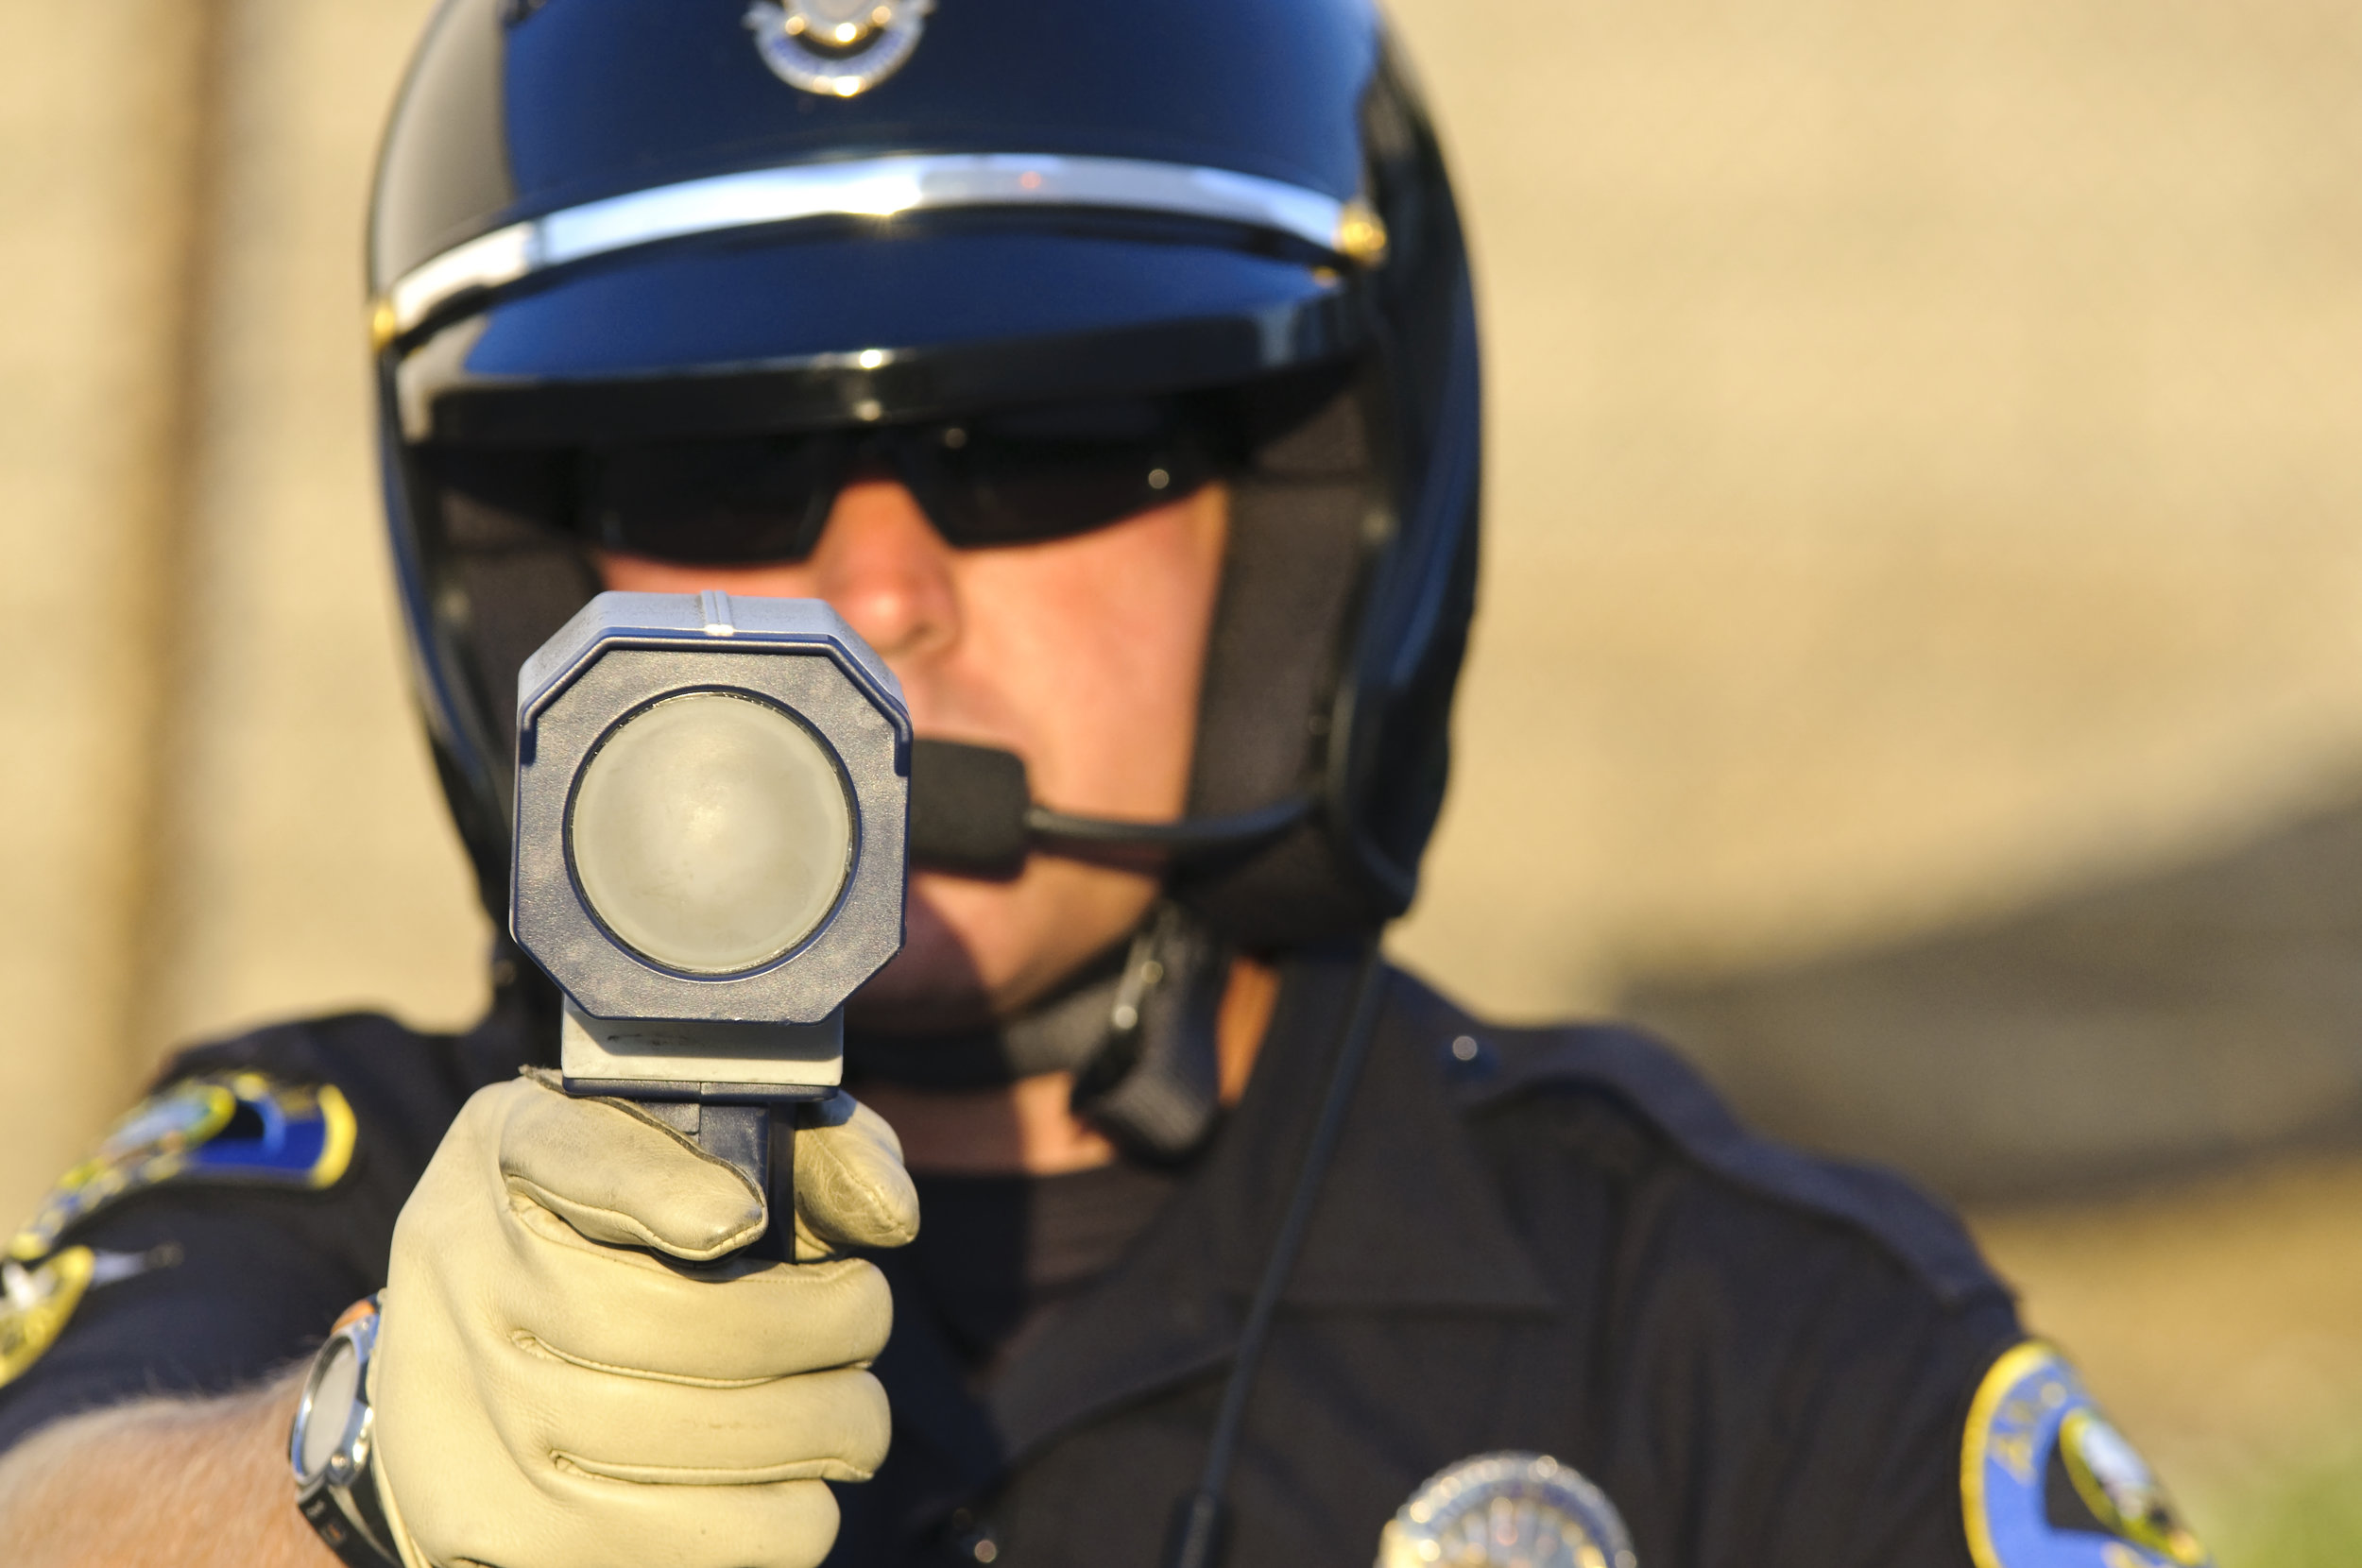 shutterstock_cop pointing radar gun.jpg